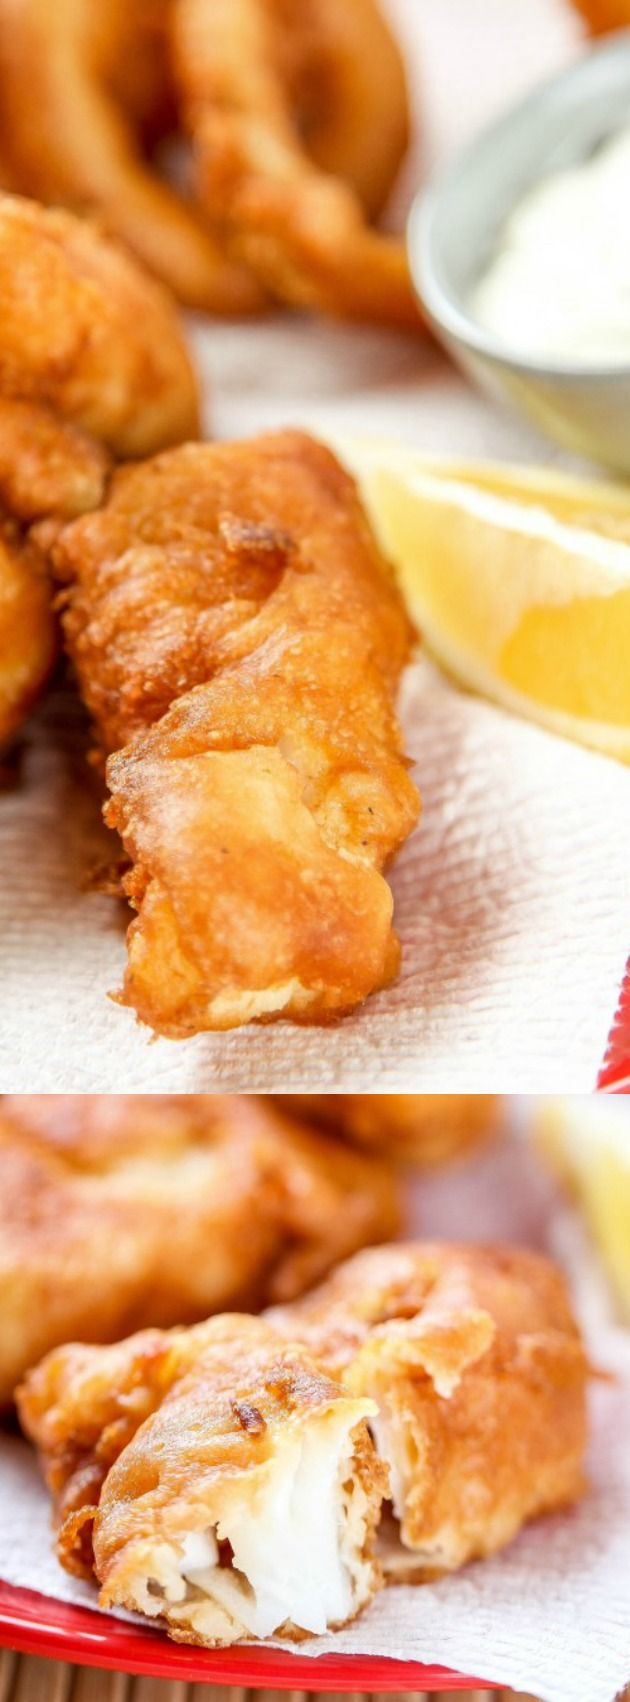 25 best ideas about fish fry batter on pinterest for Good place to fish near me